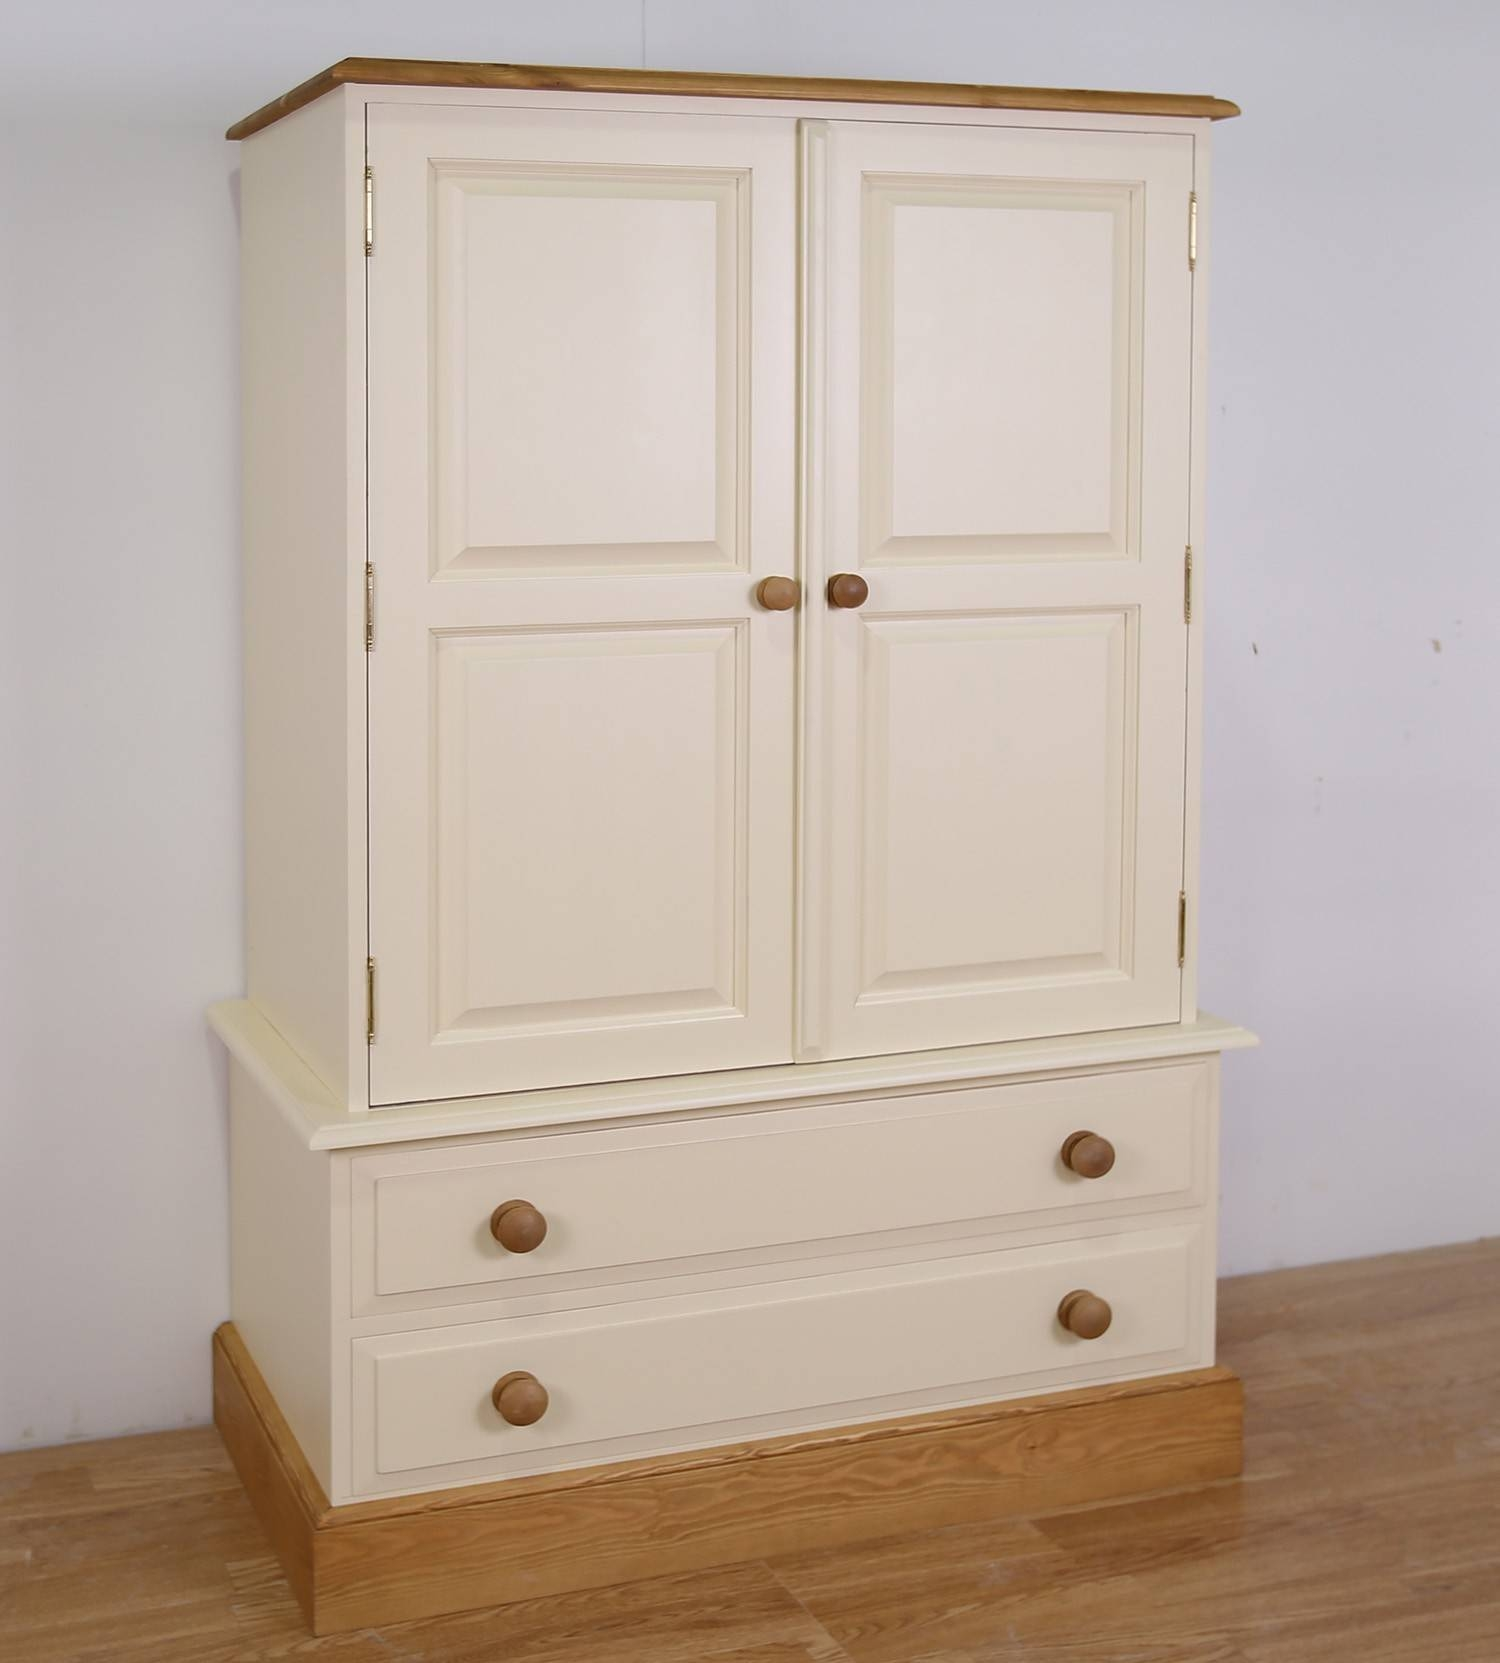 Farrow & Ball Painted Children's Wardrobe With Drawers regarding White Painted Wardrobes (Image 3 of 15)